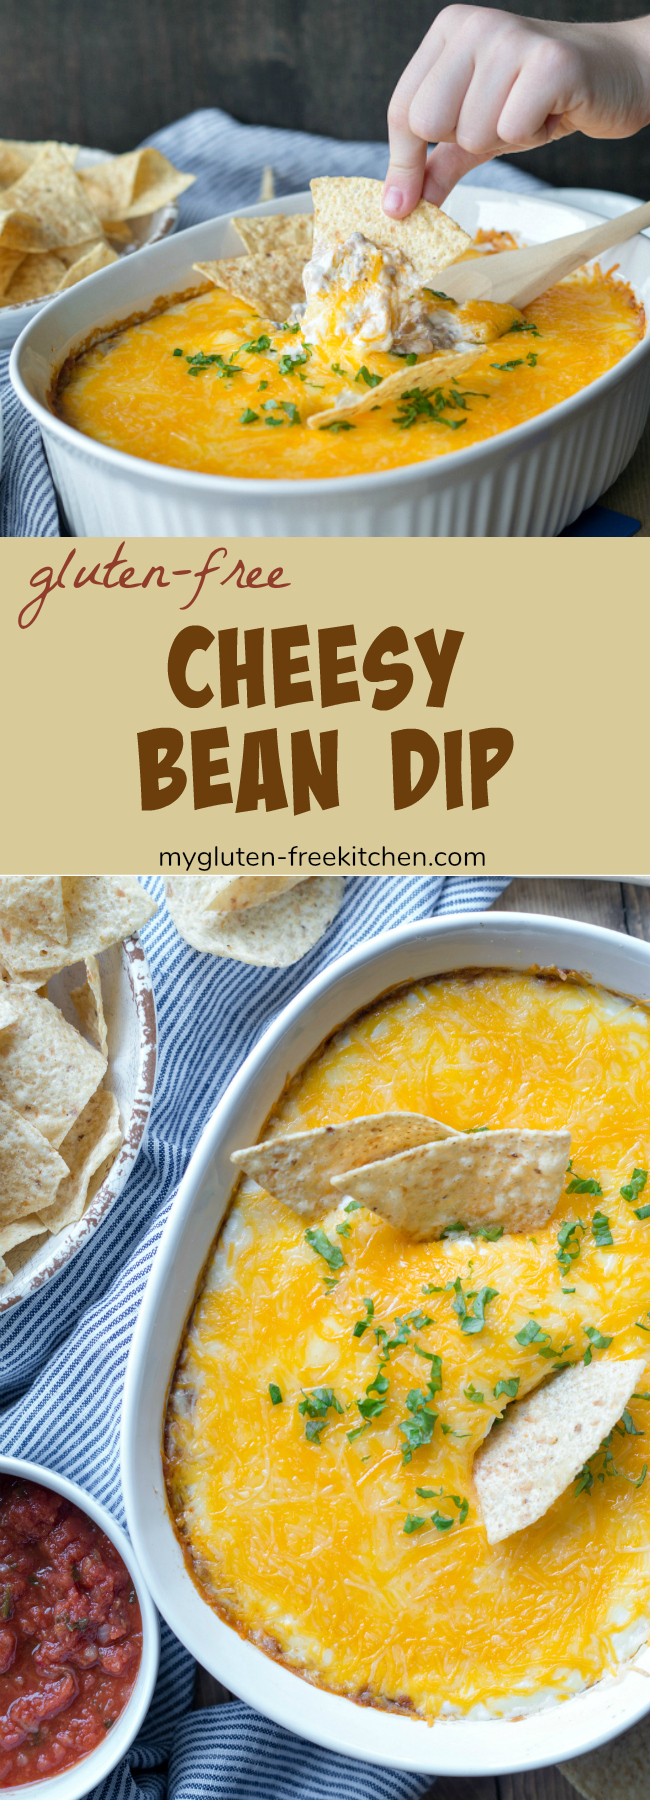 Gluten-free Cheesy Bean Dip recipe